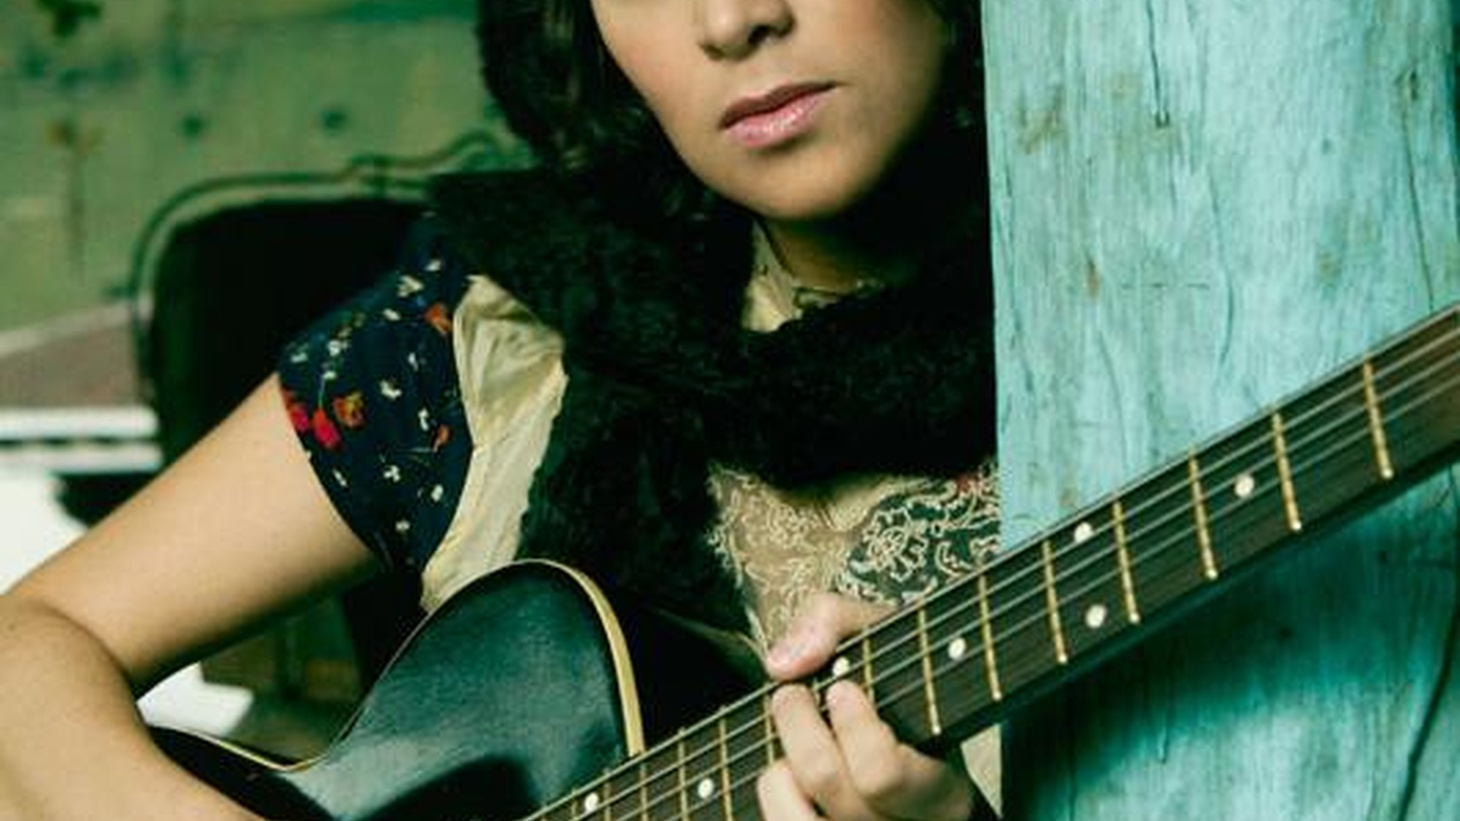 The second release from Guatemalan born, LA-based singer Gaby Moreno captures her interest in music of a bygone era with a bilingual twist...